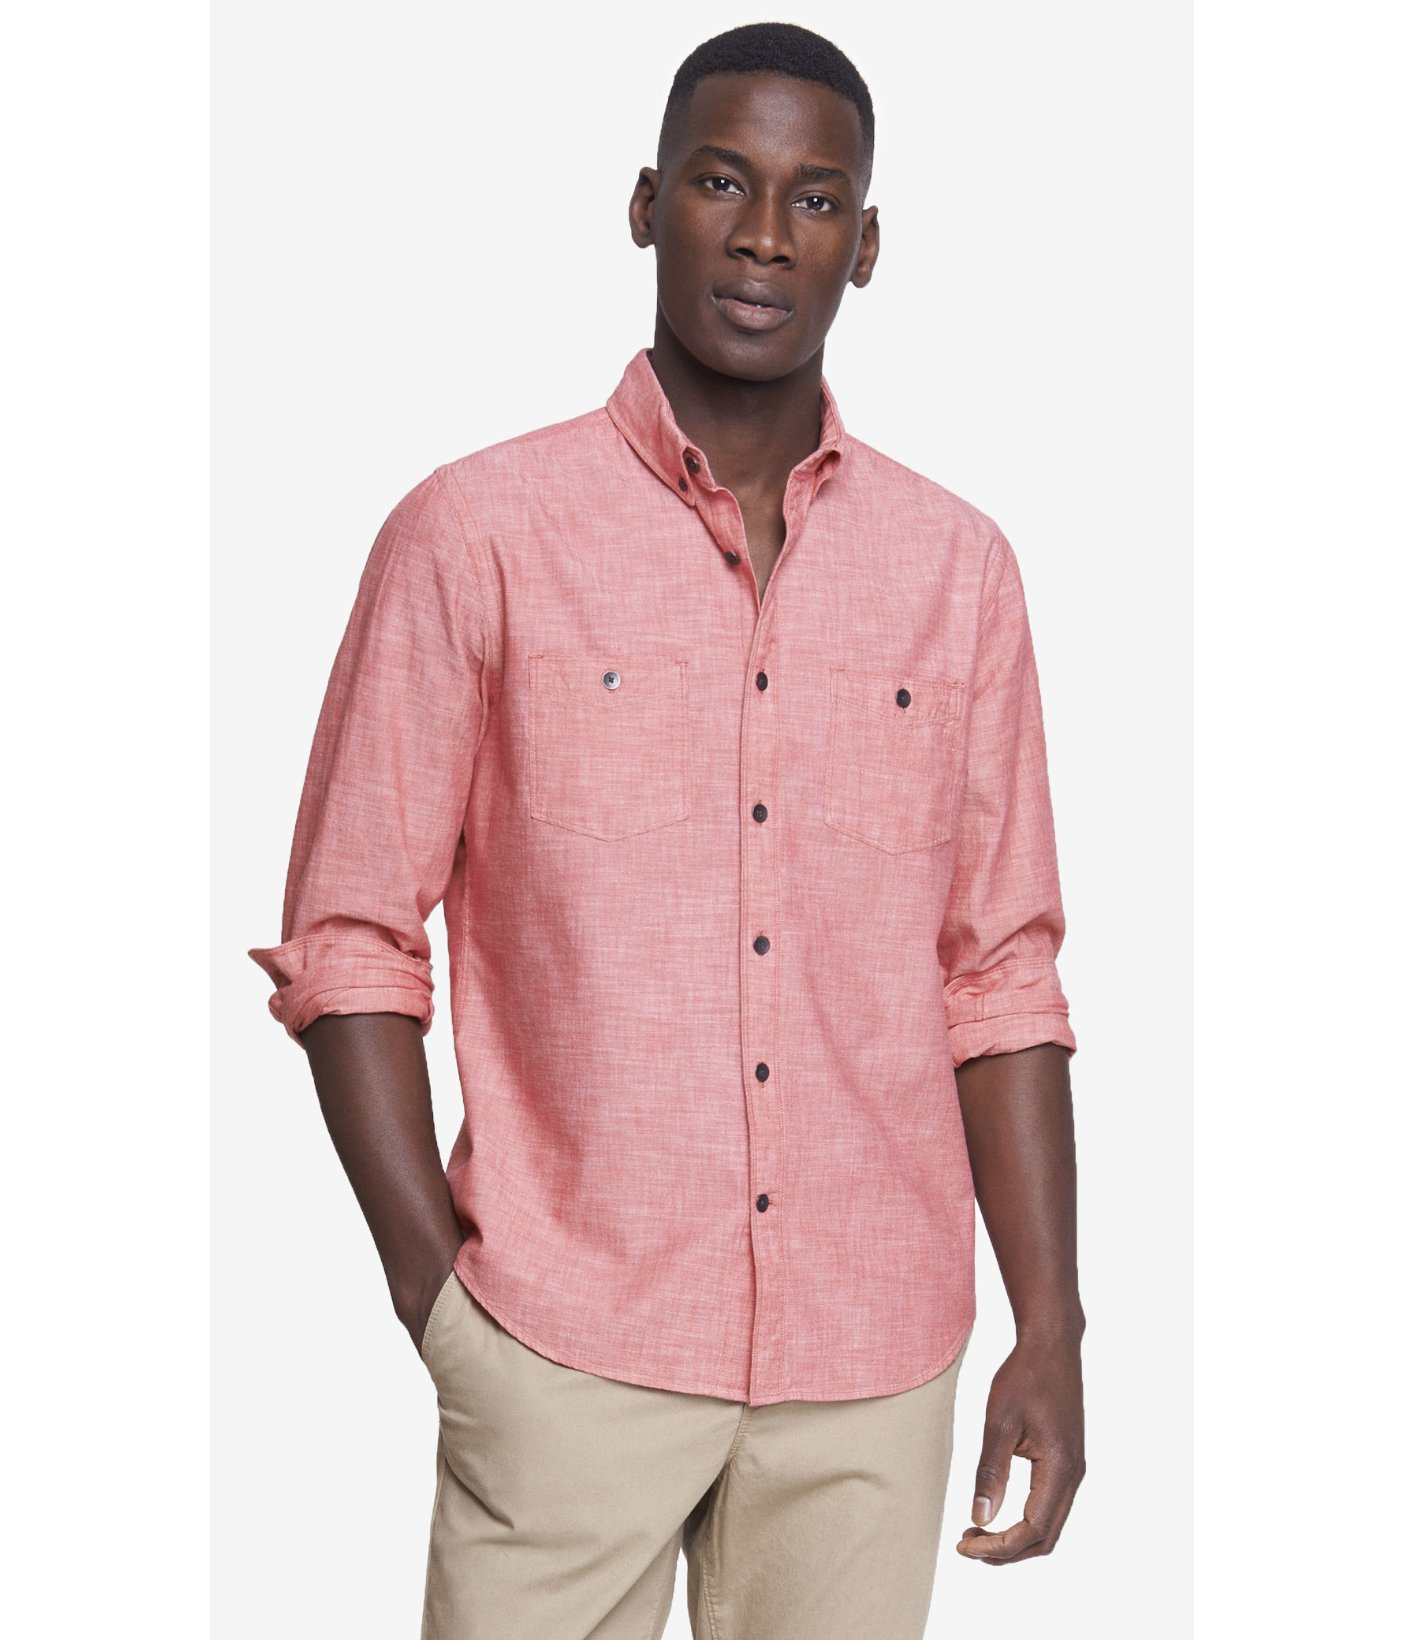 Lyst - Express Slub Chambray Button-Down Collar Shirt in Pink for Men